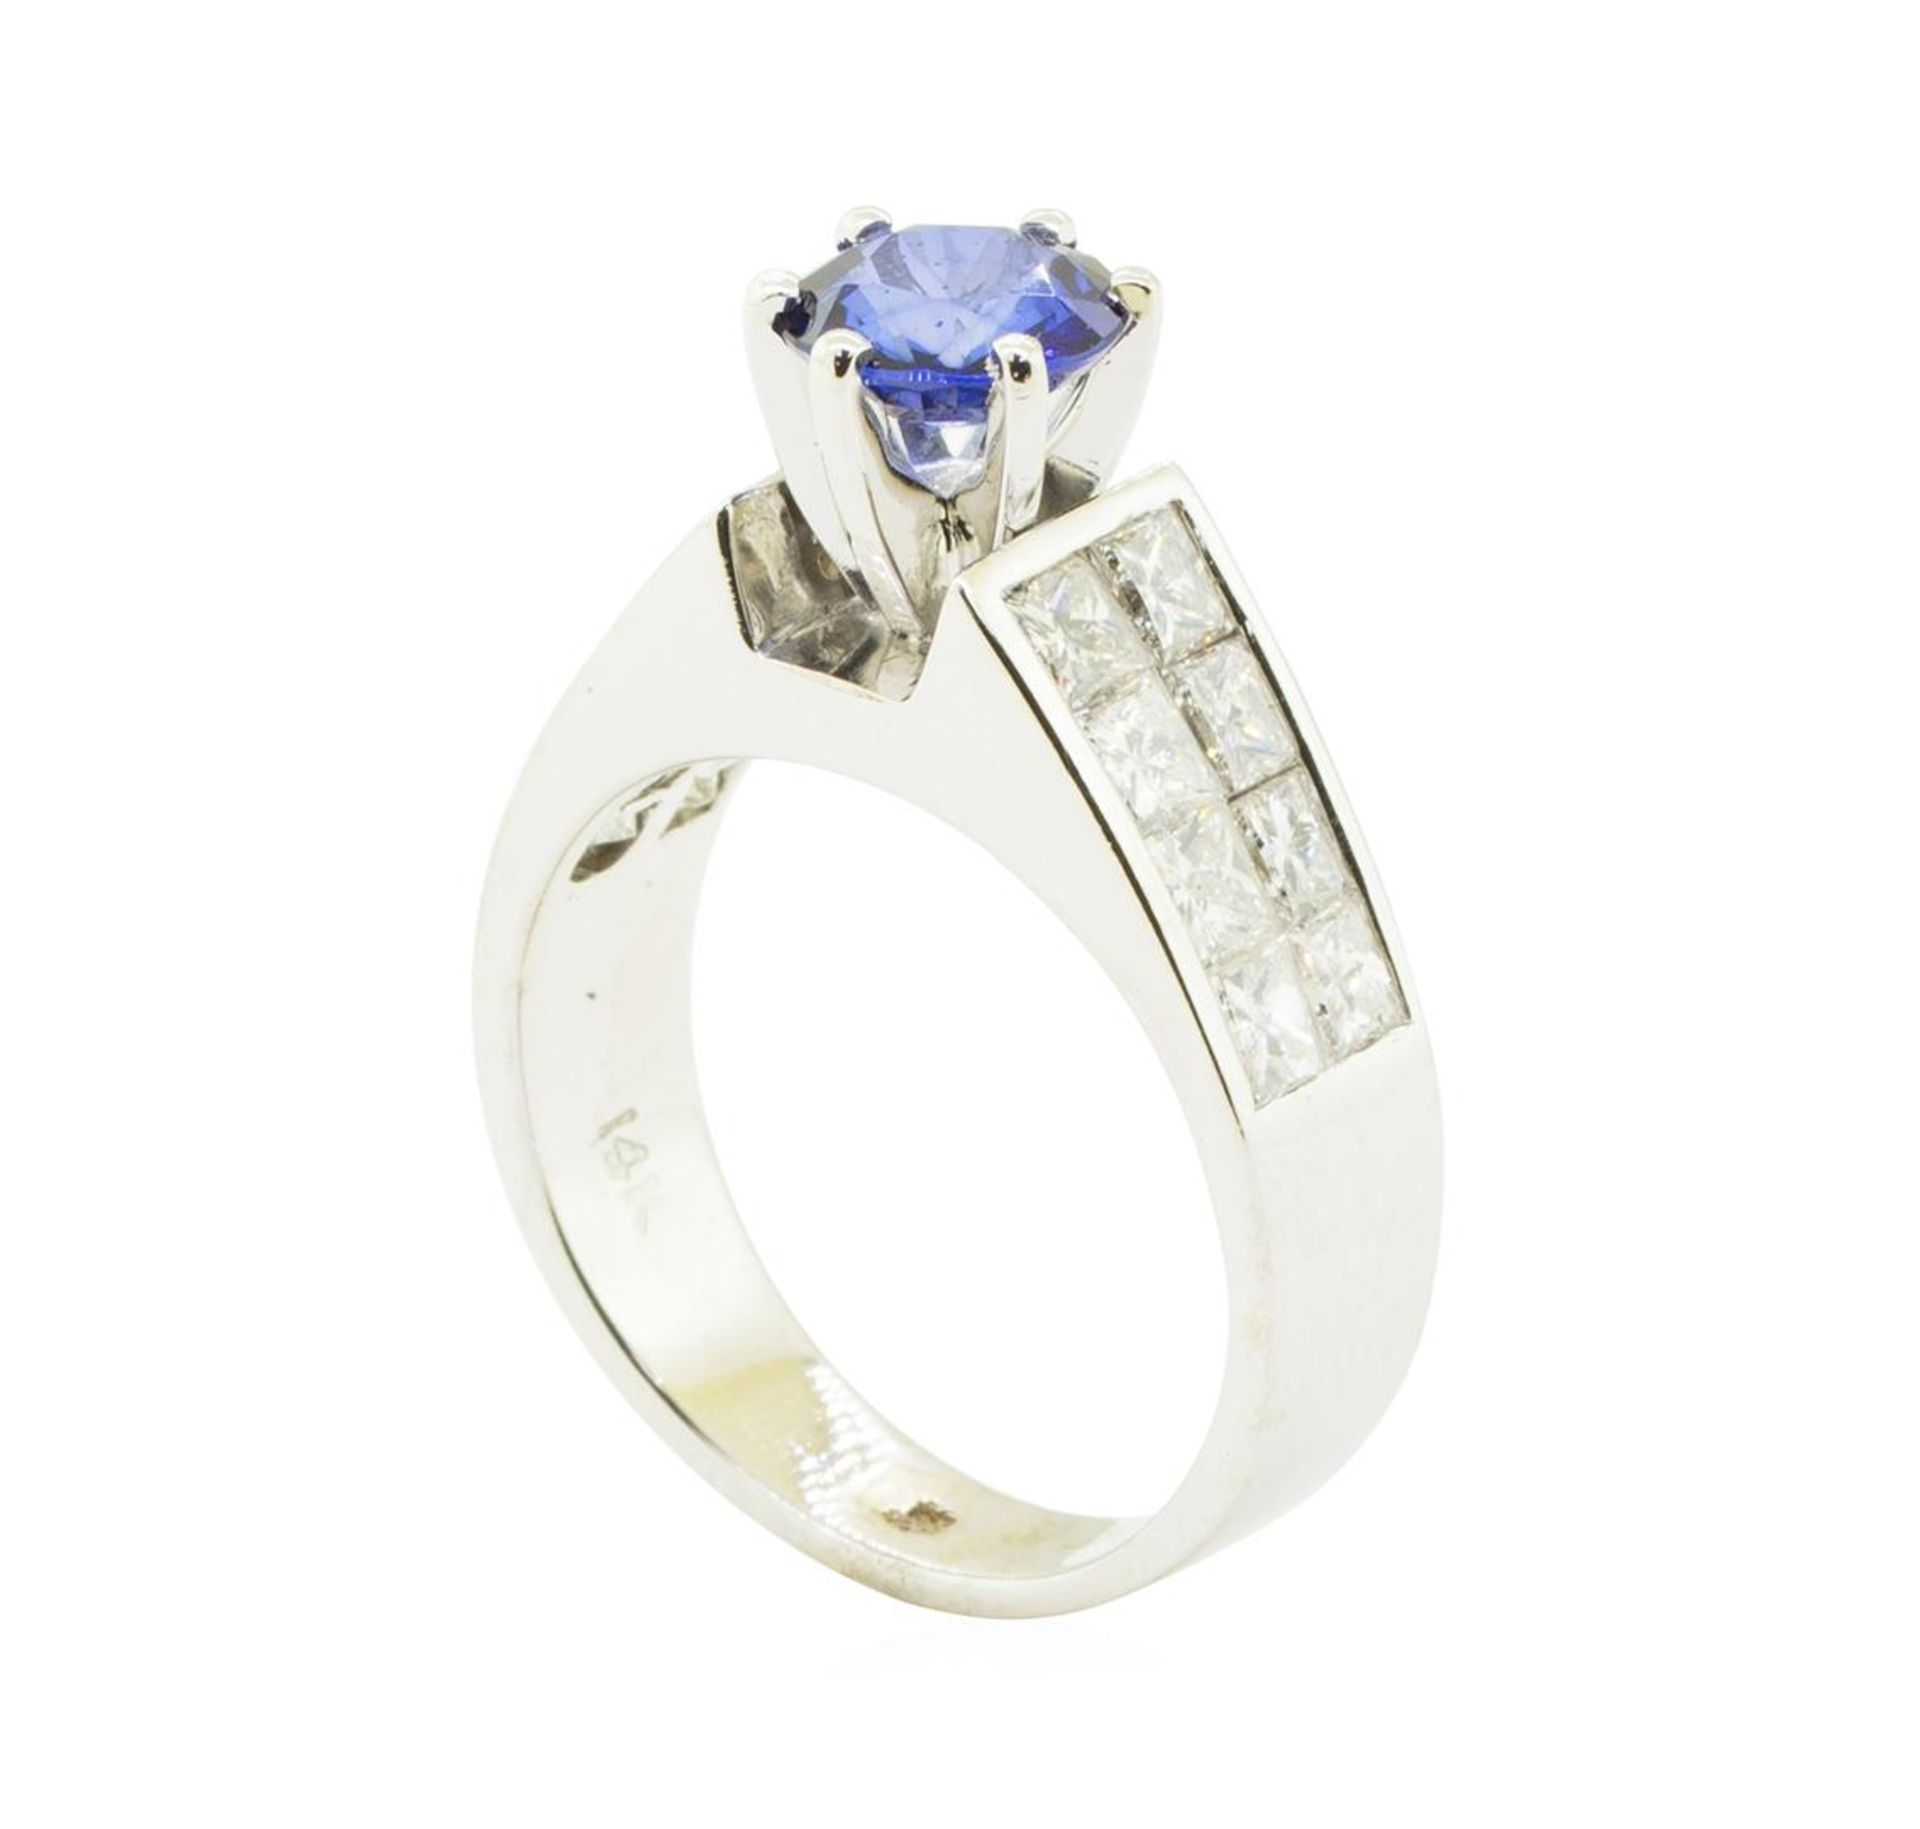 3.15 ctw Round Brilliant Blue Sapphire And Diamond Ring - 14KT White Gold - Image 4 of 5